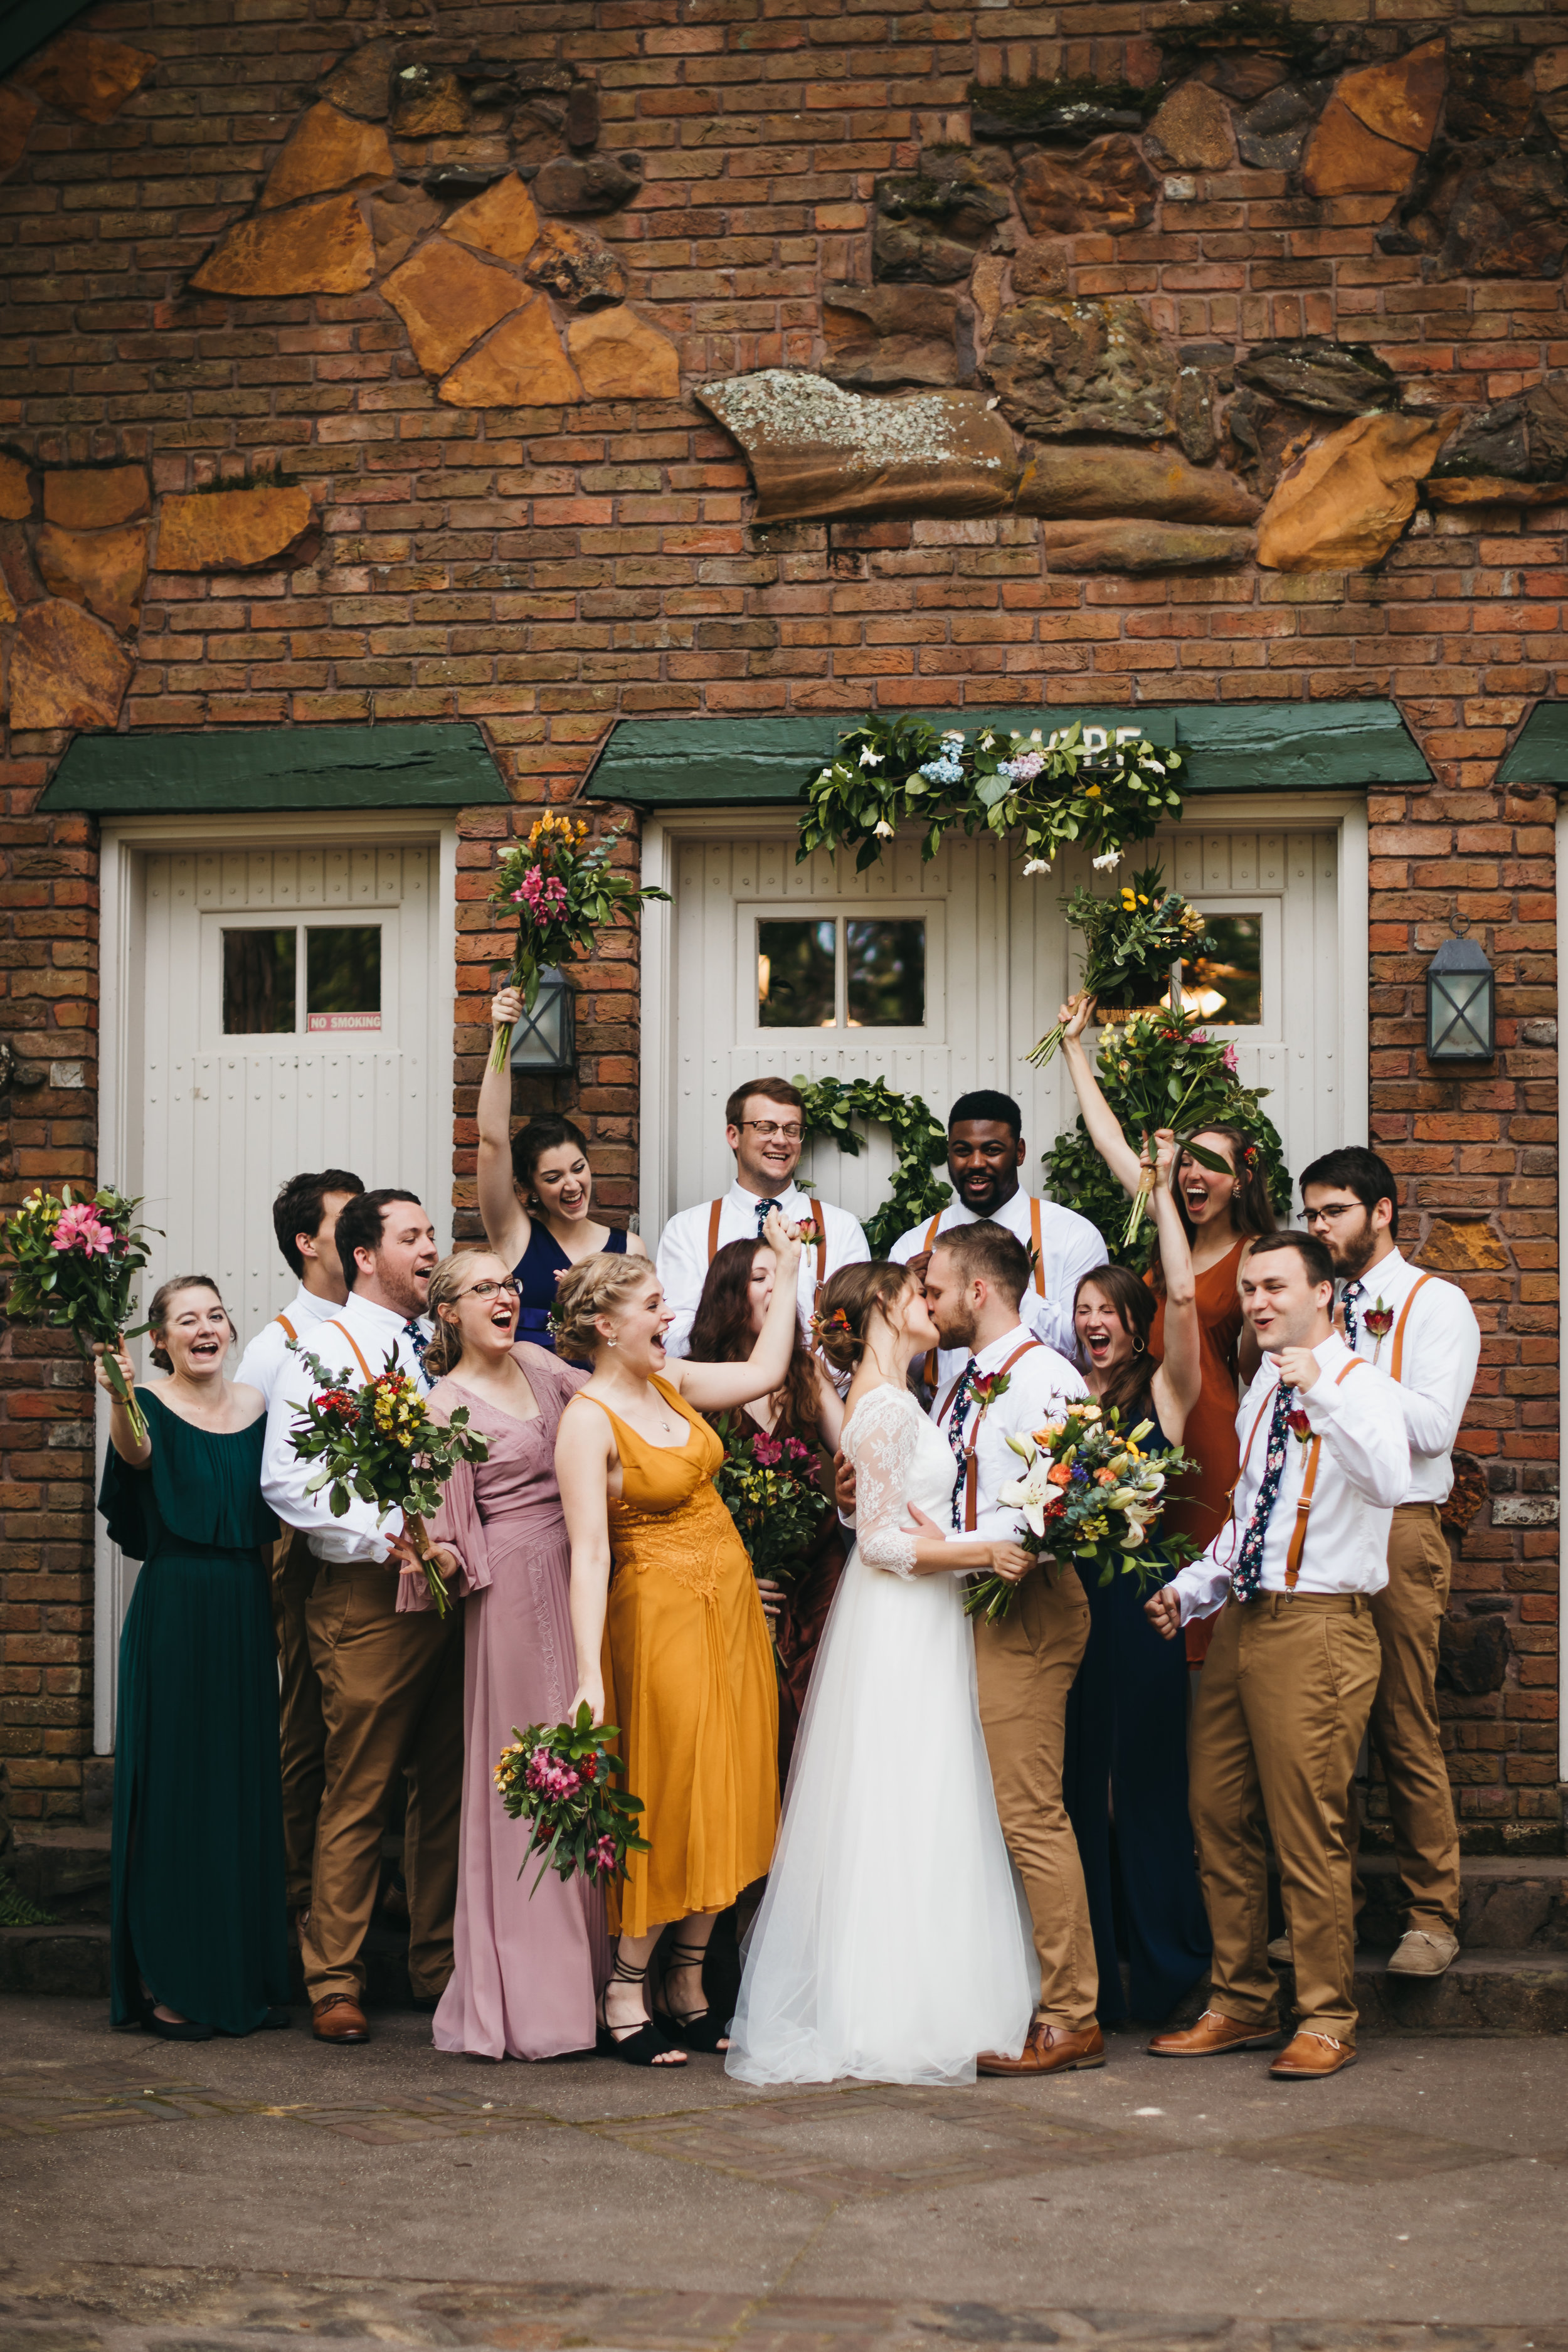 Bridesmaids and groomsmen throw their hands in the air in excitement surrounding the bride and groom as they kiss